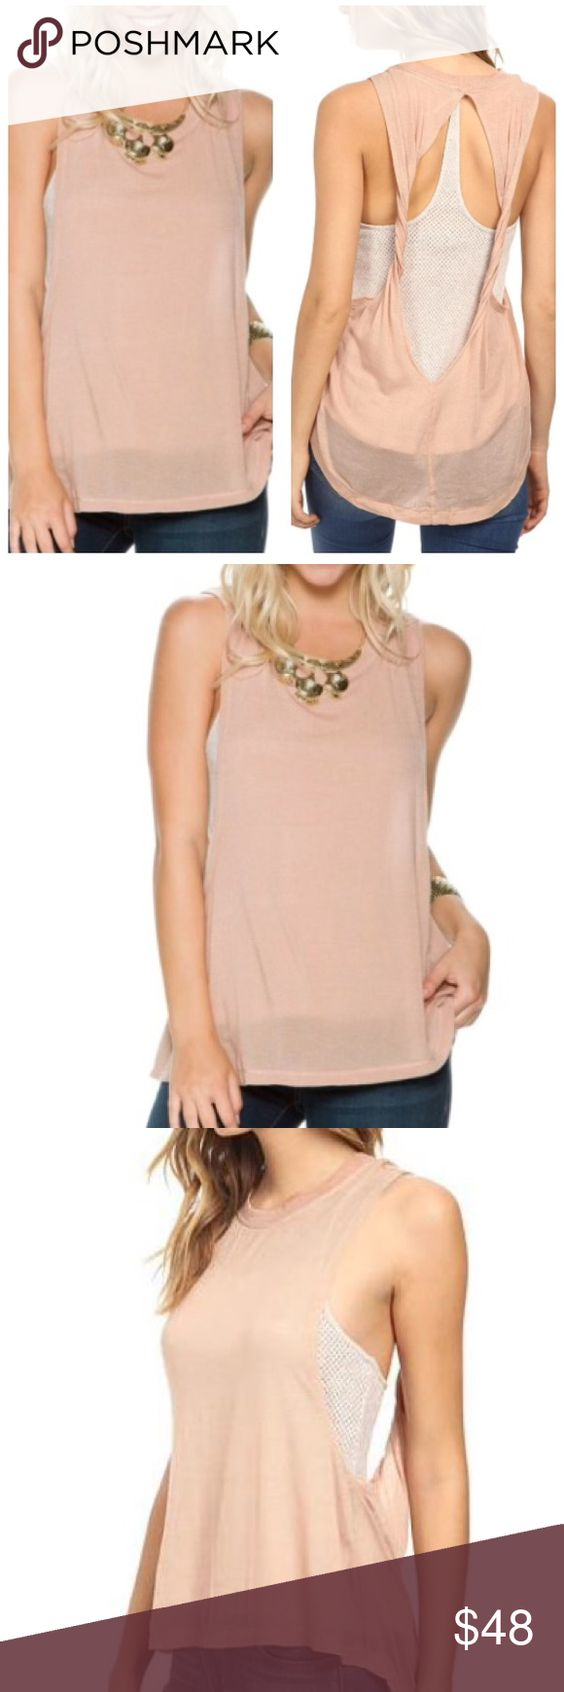 Free People Twist Tank Peach tank with an open, twisted back accent. 57% tencel, 8% modal, 5% spandex; Lining: 60% cotton, 40% polyester. Casual curved hemline. Free People Tops Tank Tops